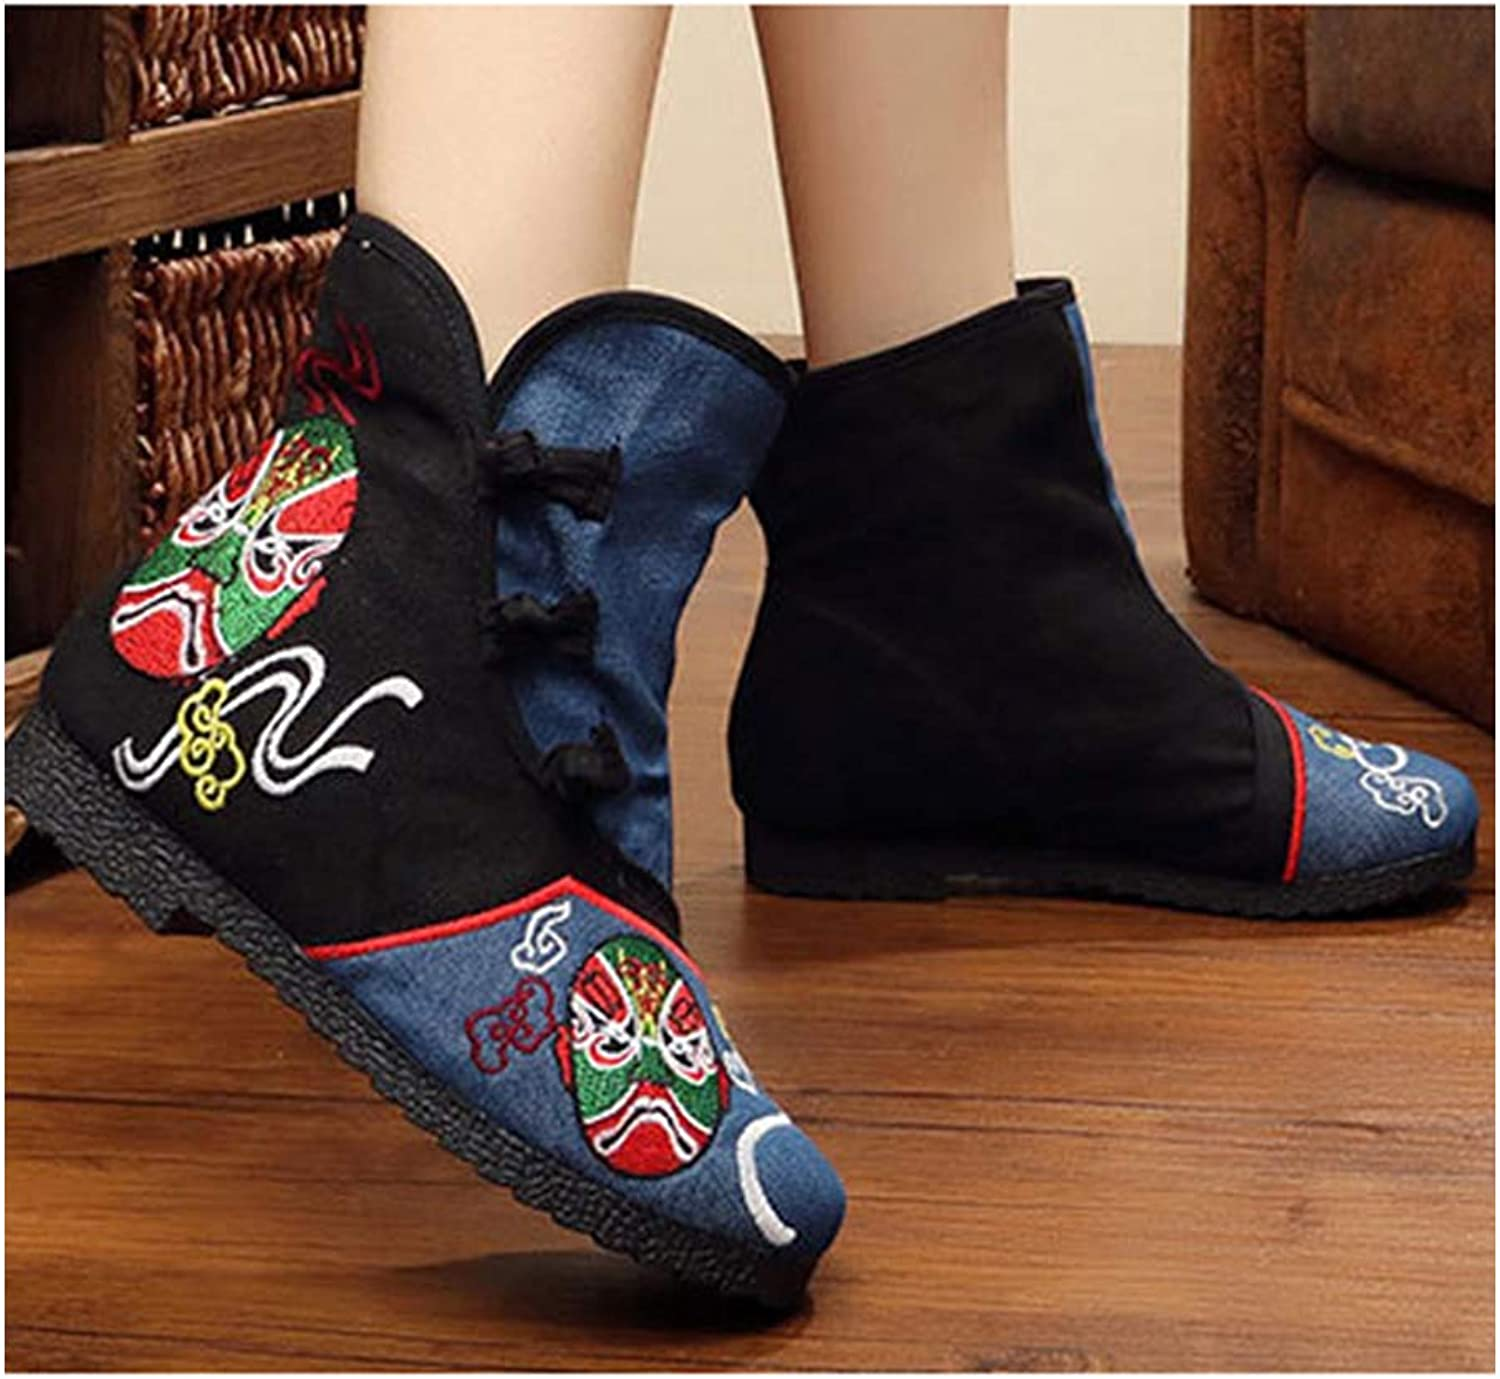 Longxing Vintage Beijing Cloth shoes Embroidered Boots bluee Black